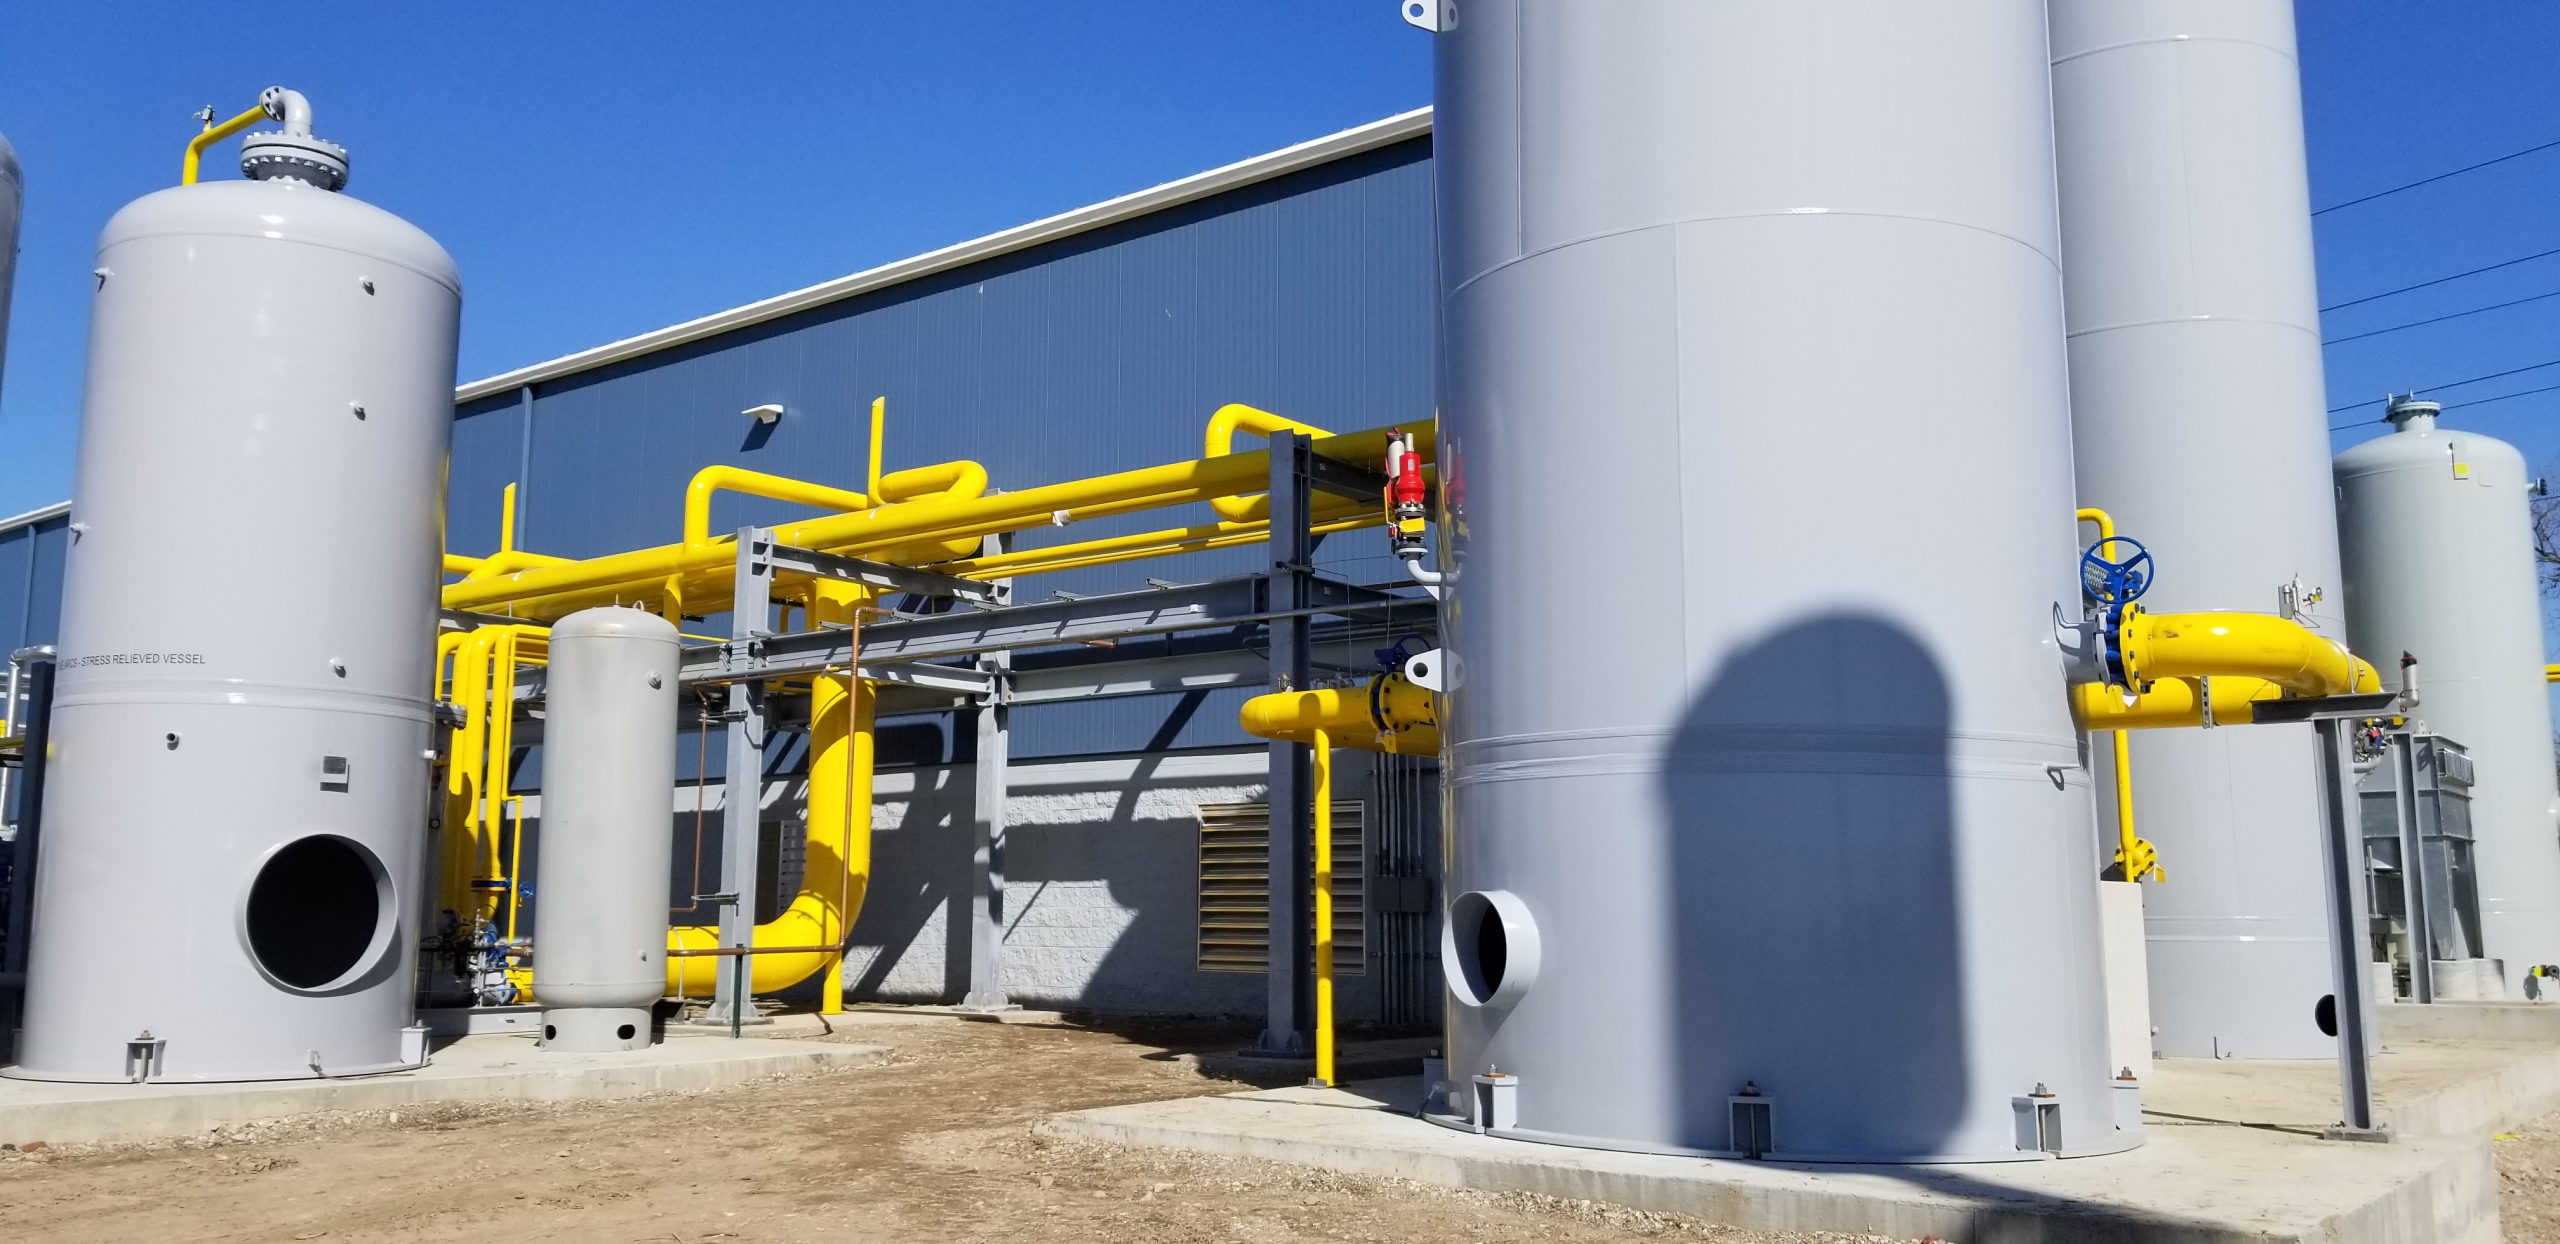 Product and waste tanks